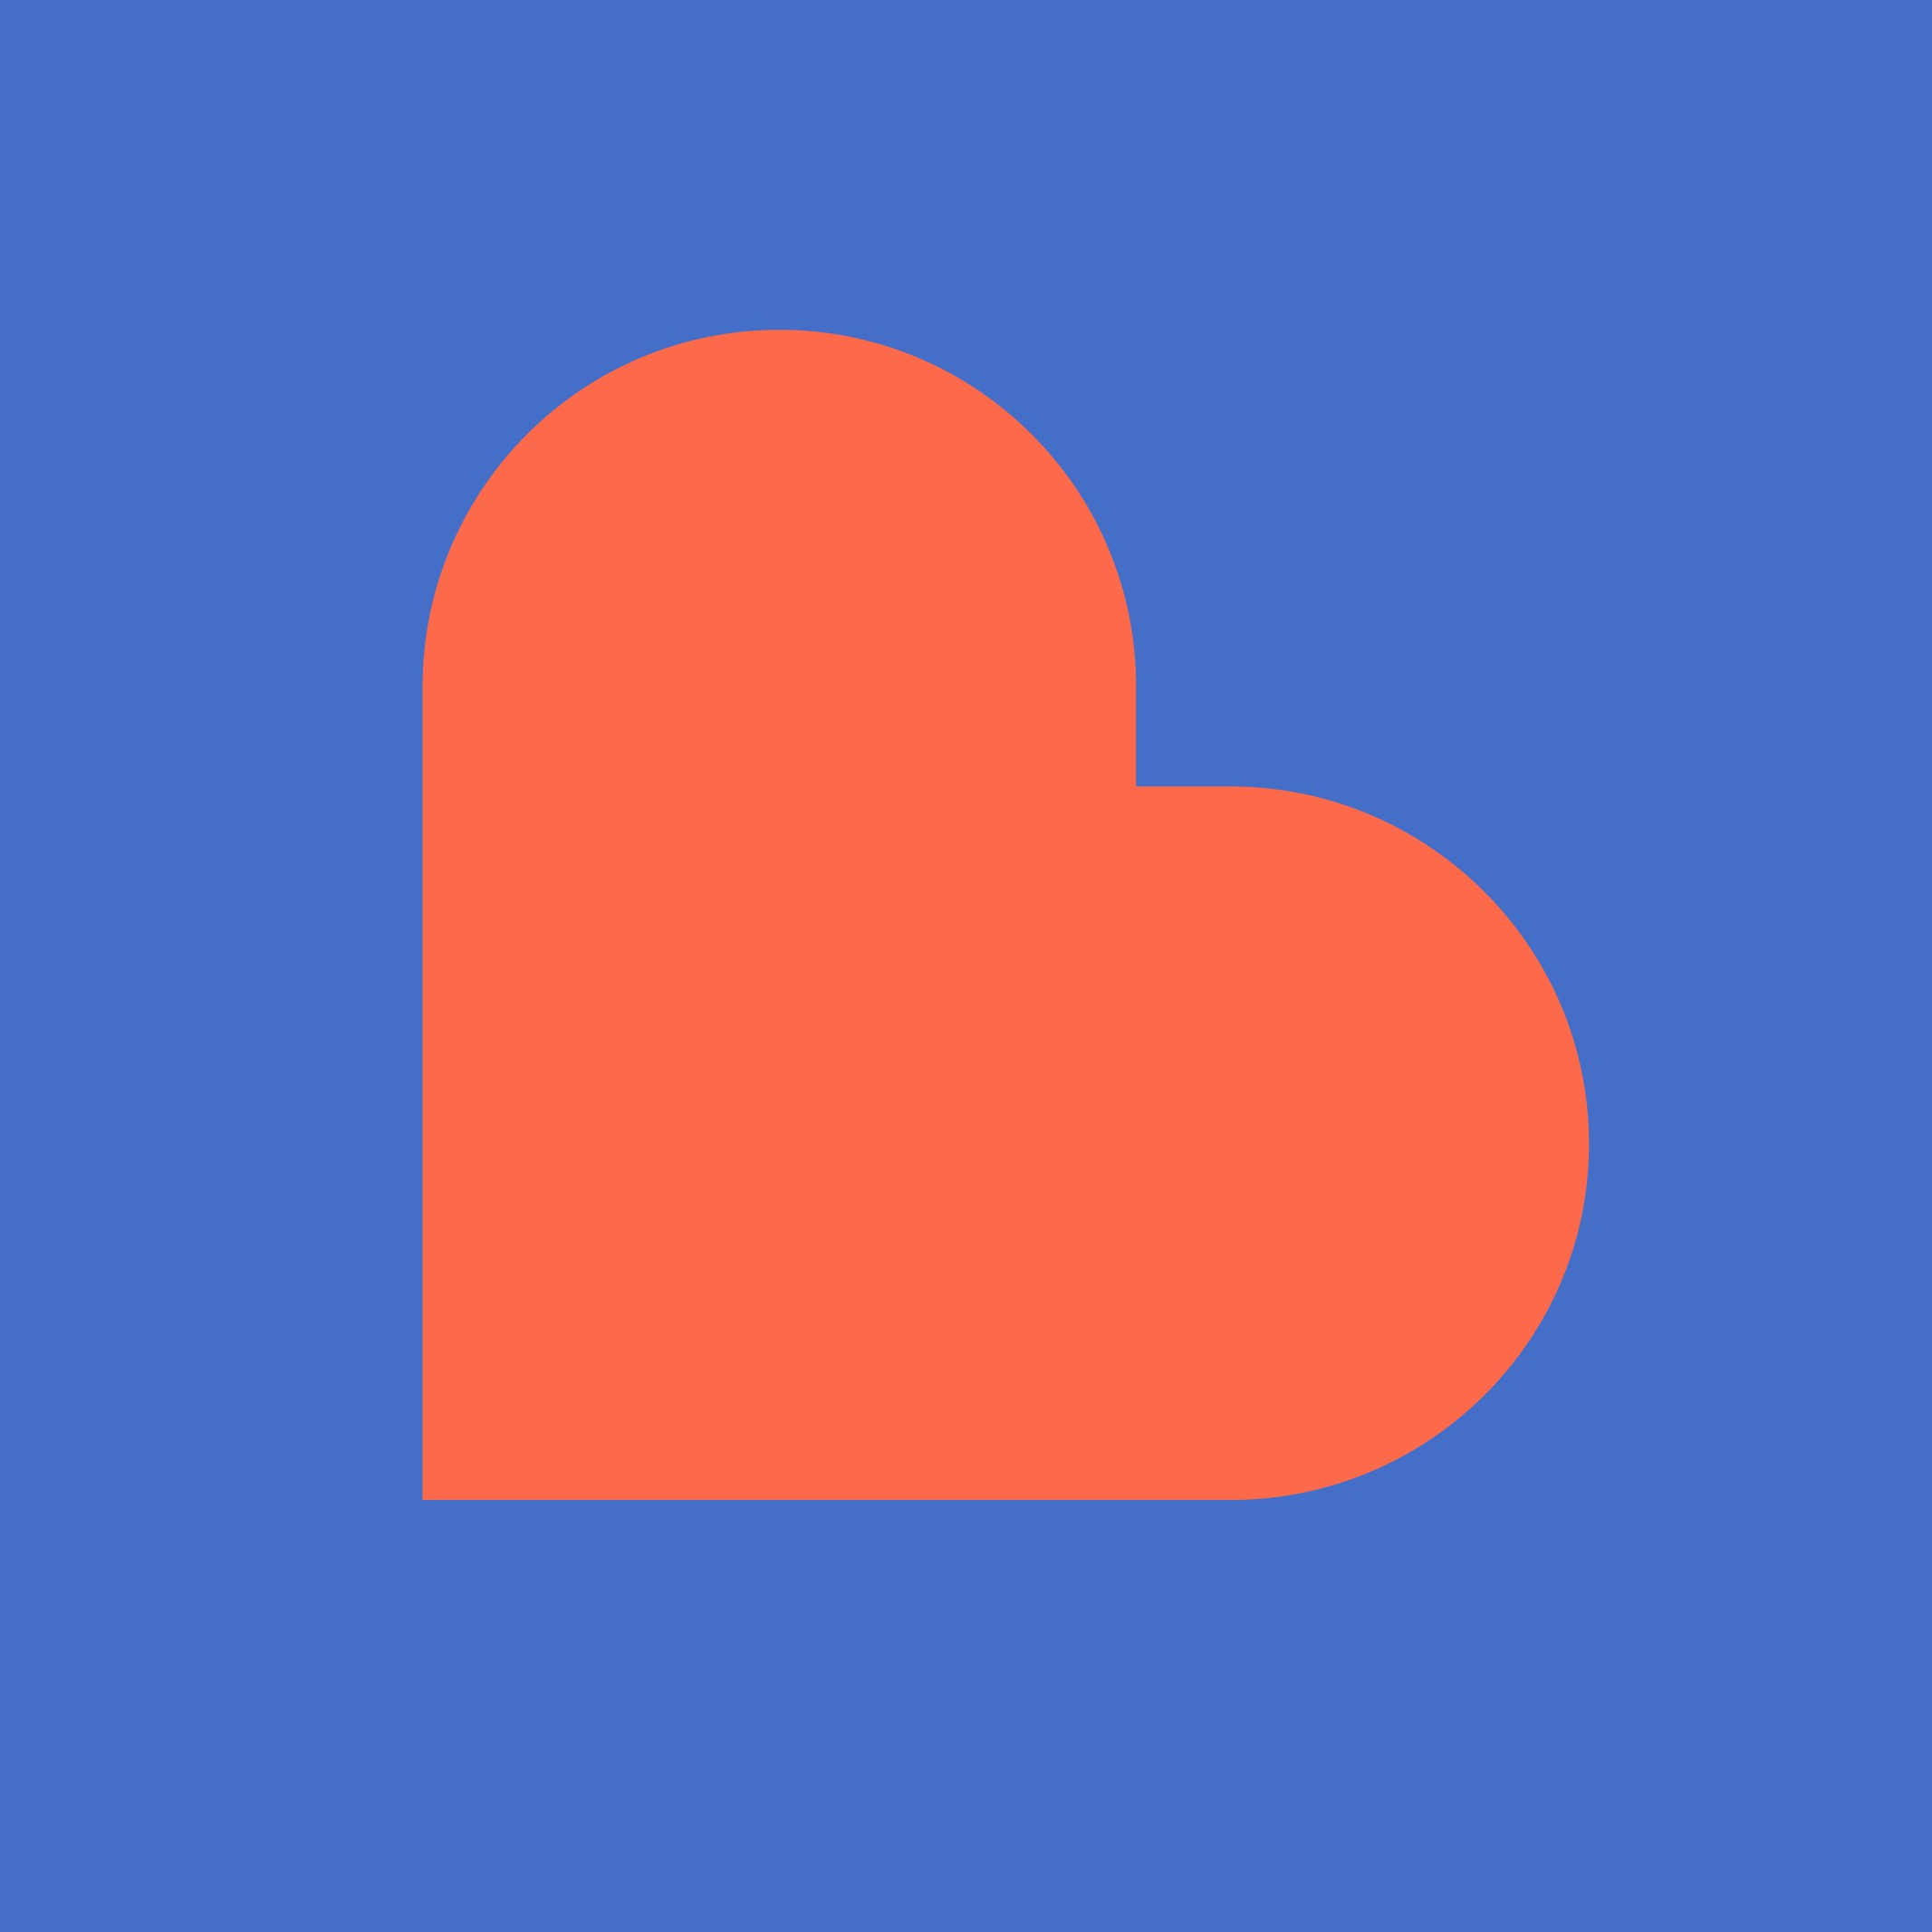 Create an innovative app icon/logo capturing the essence of Breeder, a dating app for single parents